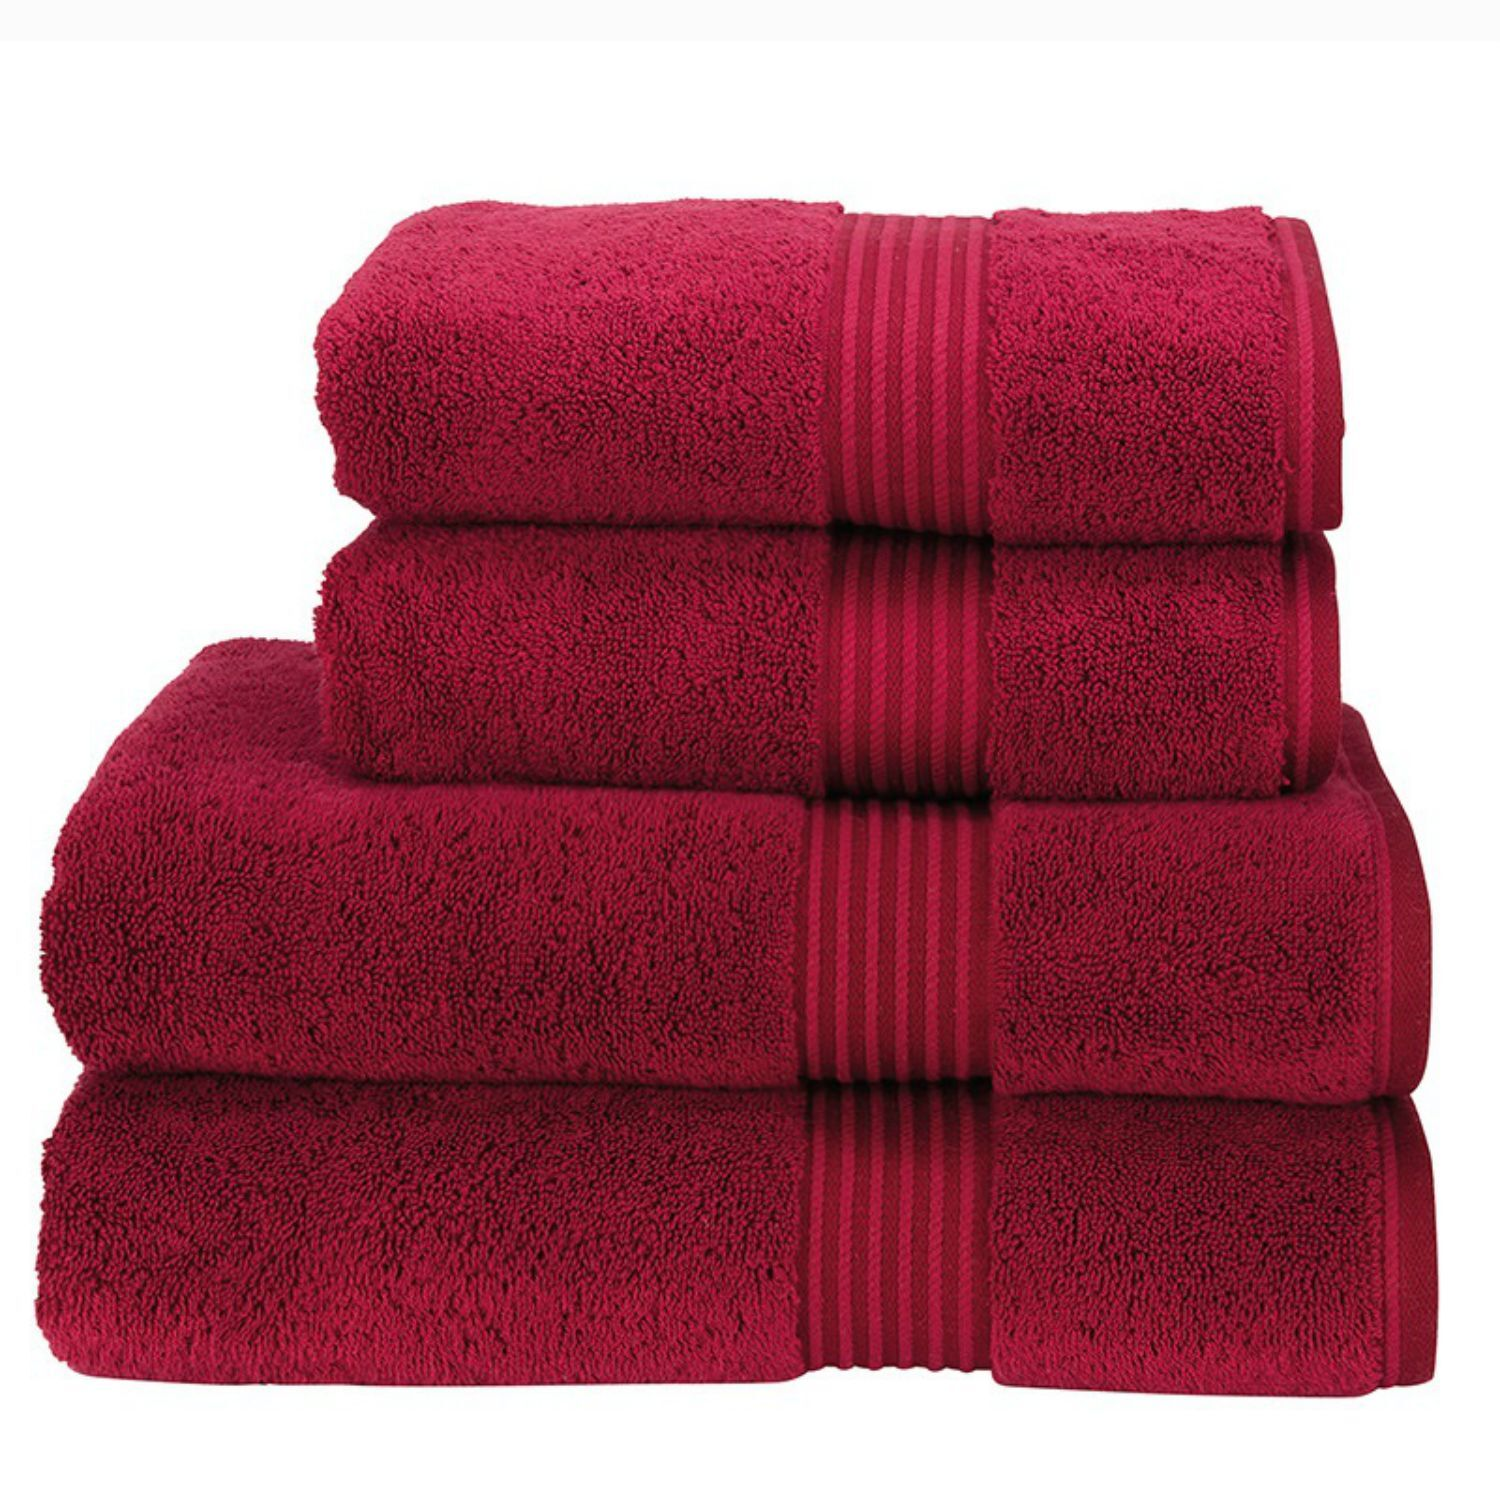 Christy Hotel Towels (Cherry)